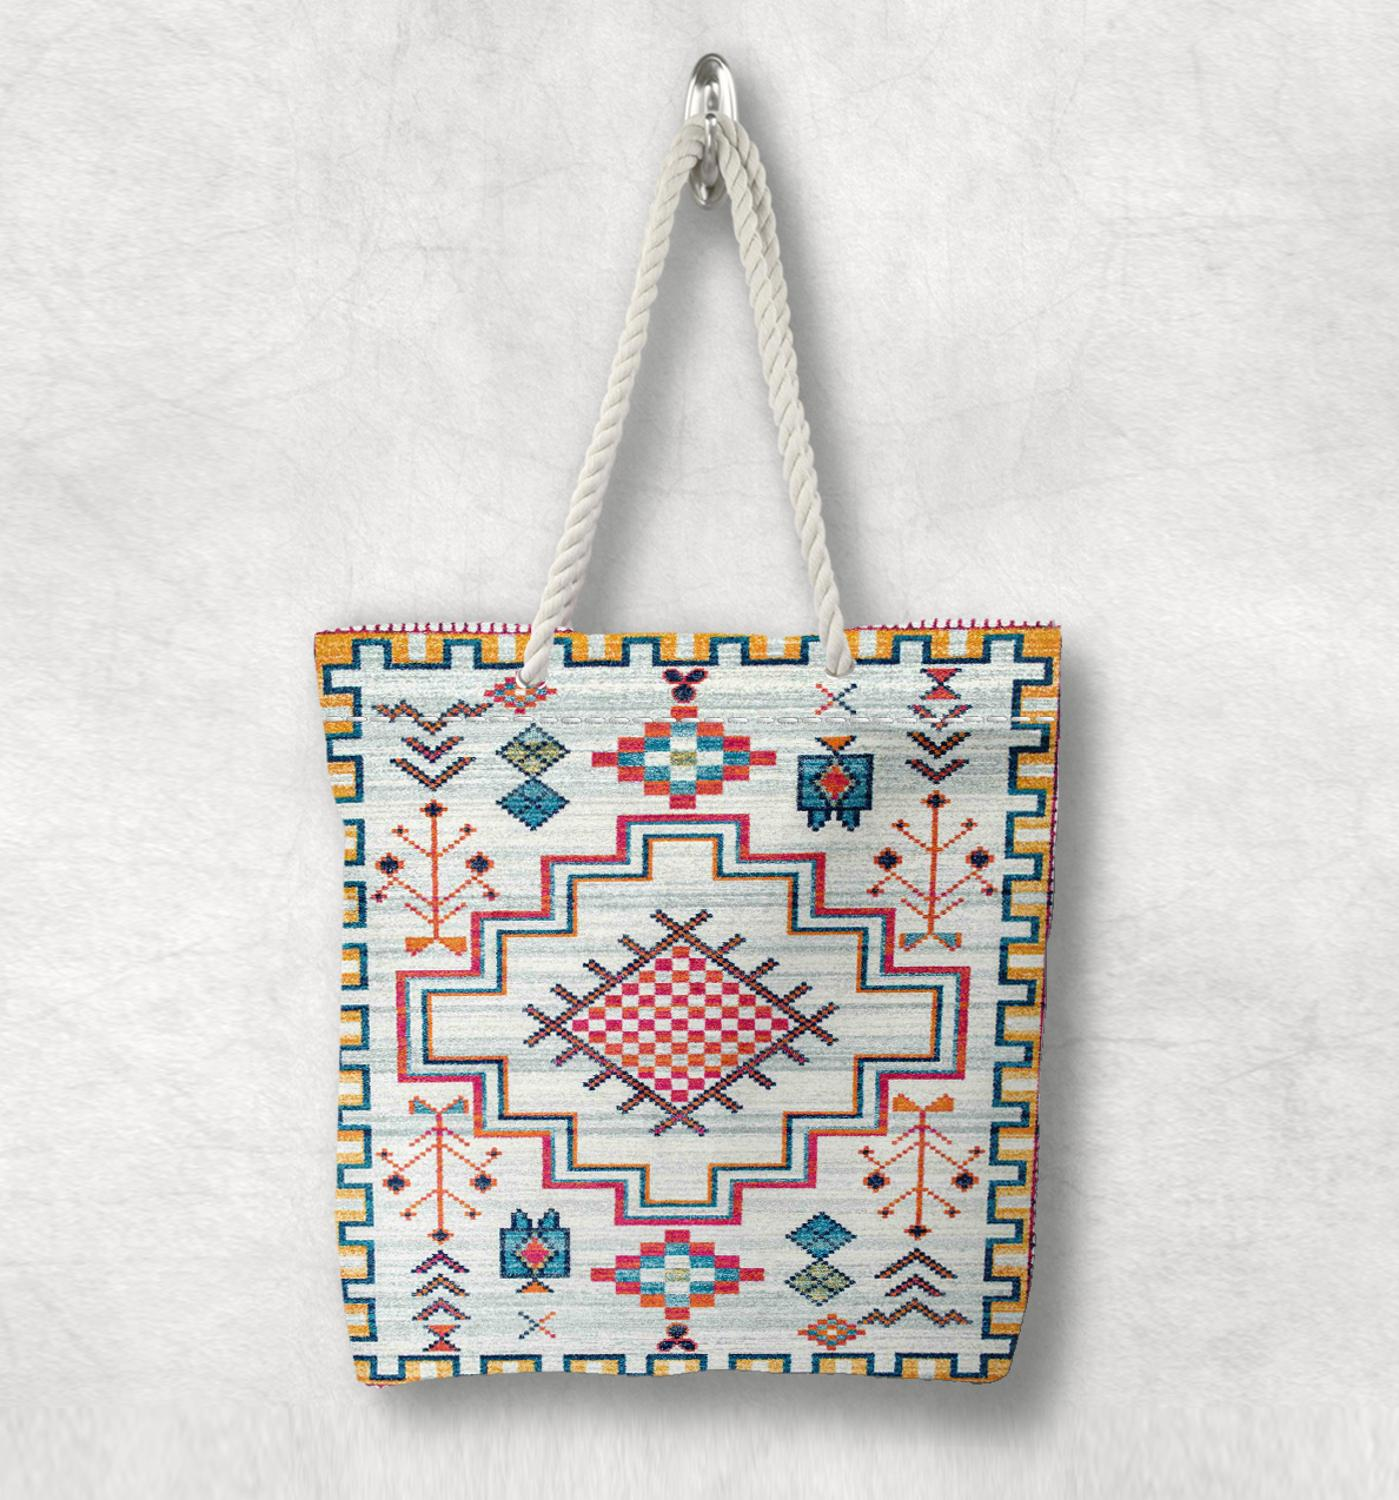 Else Anatolia Vintage Turkish Kilim Design New Fashion White Rope Handle Canvas Bag Cotton Canvas Zippered Tote Bag Shoulder Bag